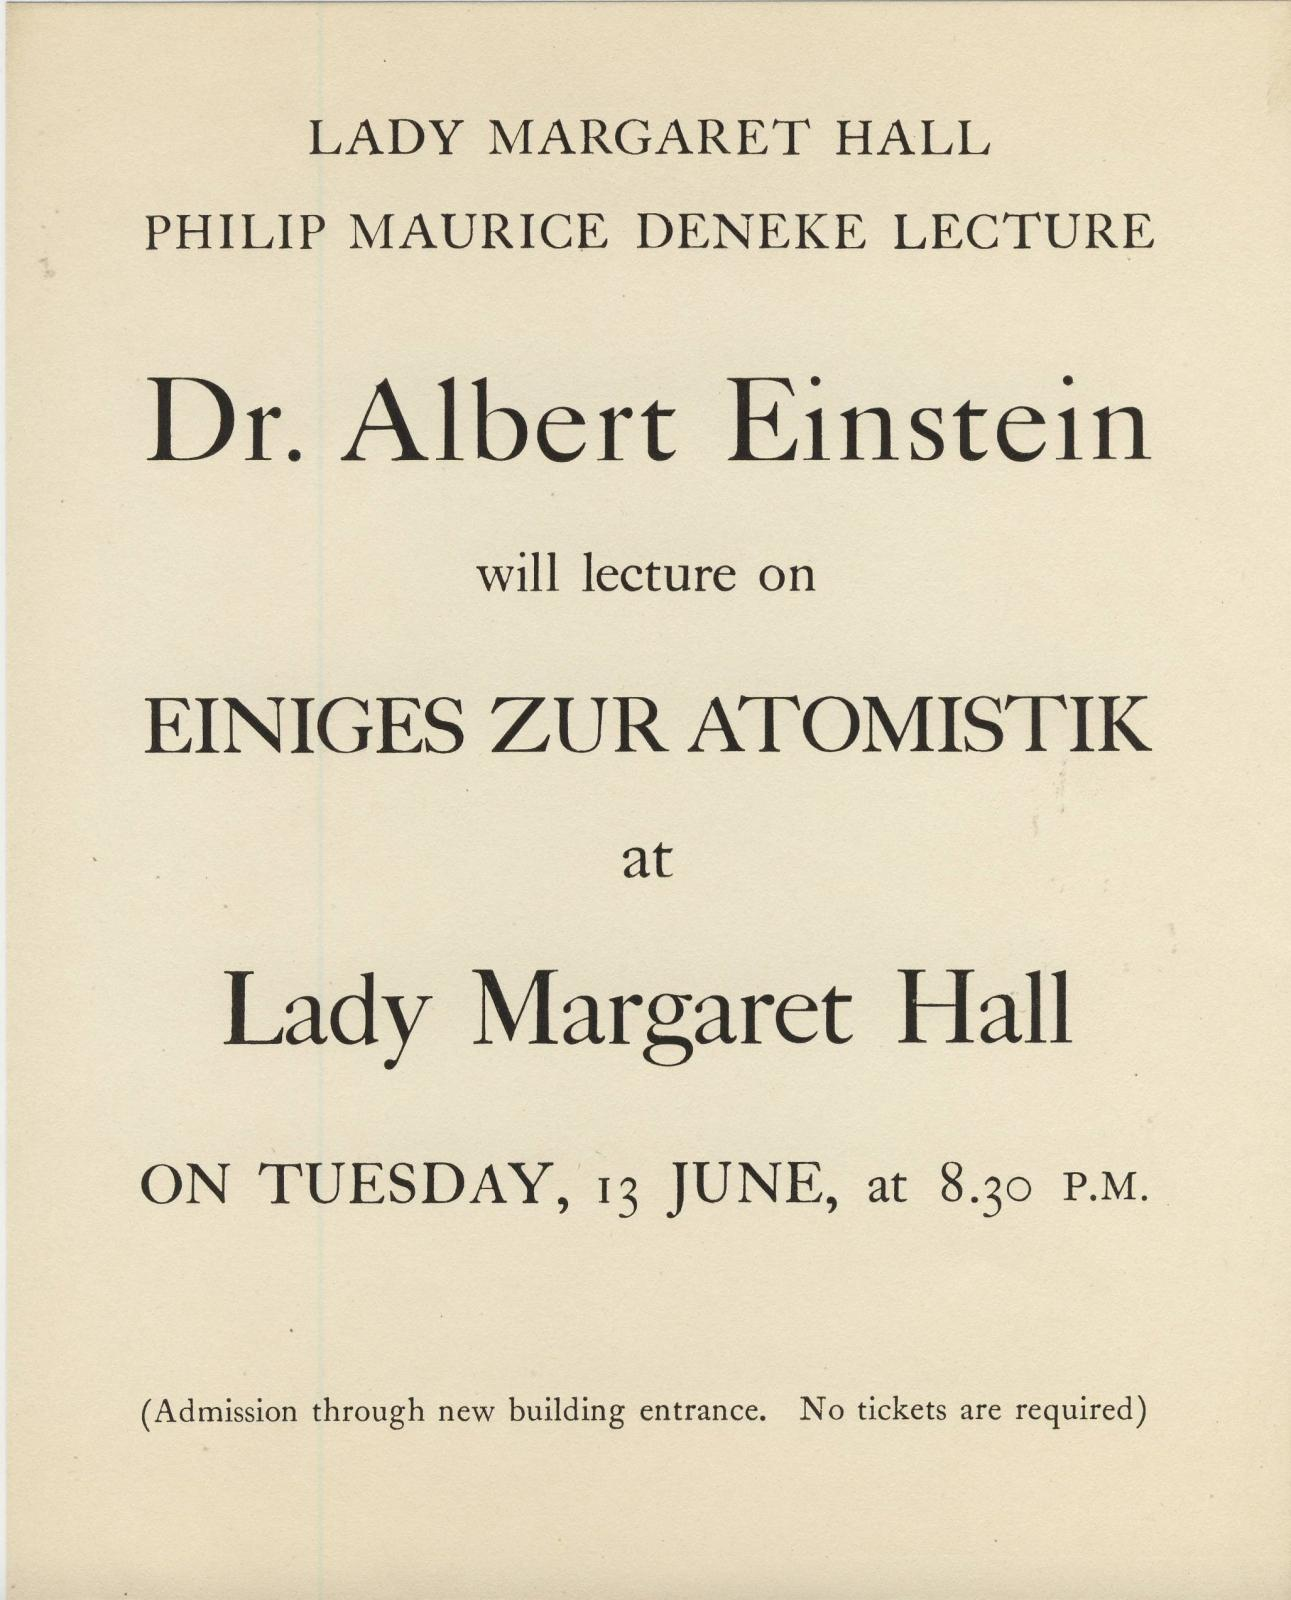 The 1933 Deneke Lecture had a particularly memorable and magnetic speaker.